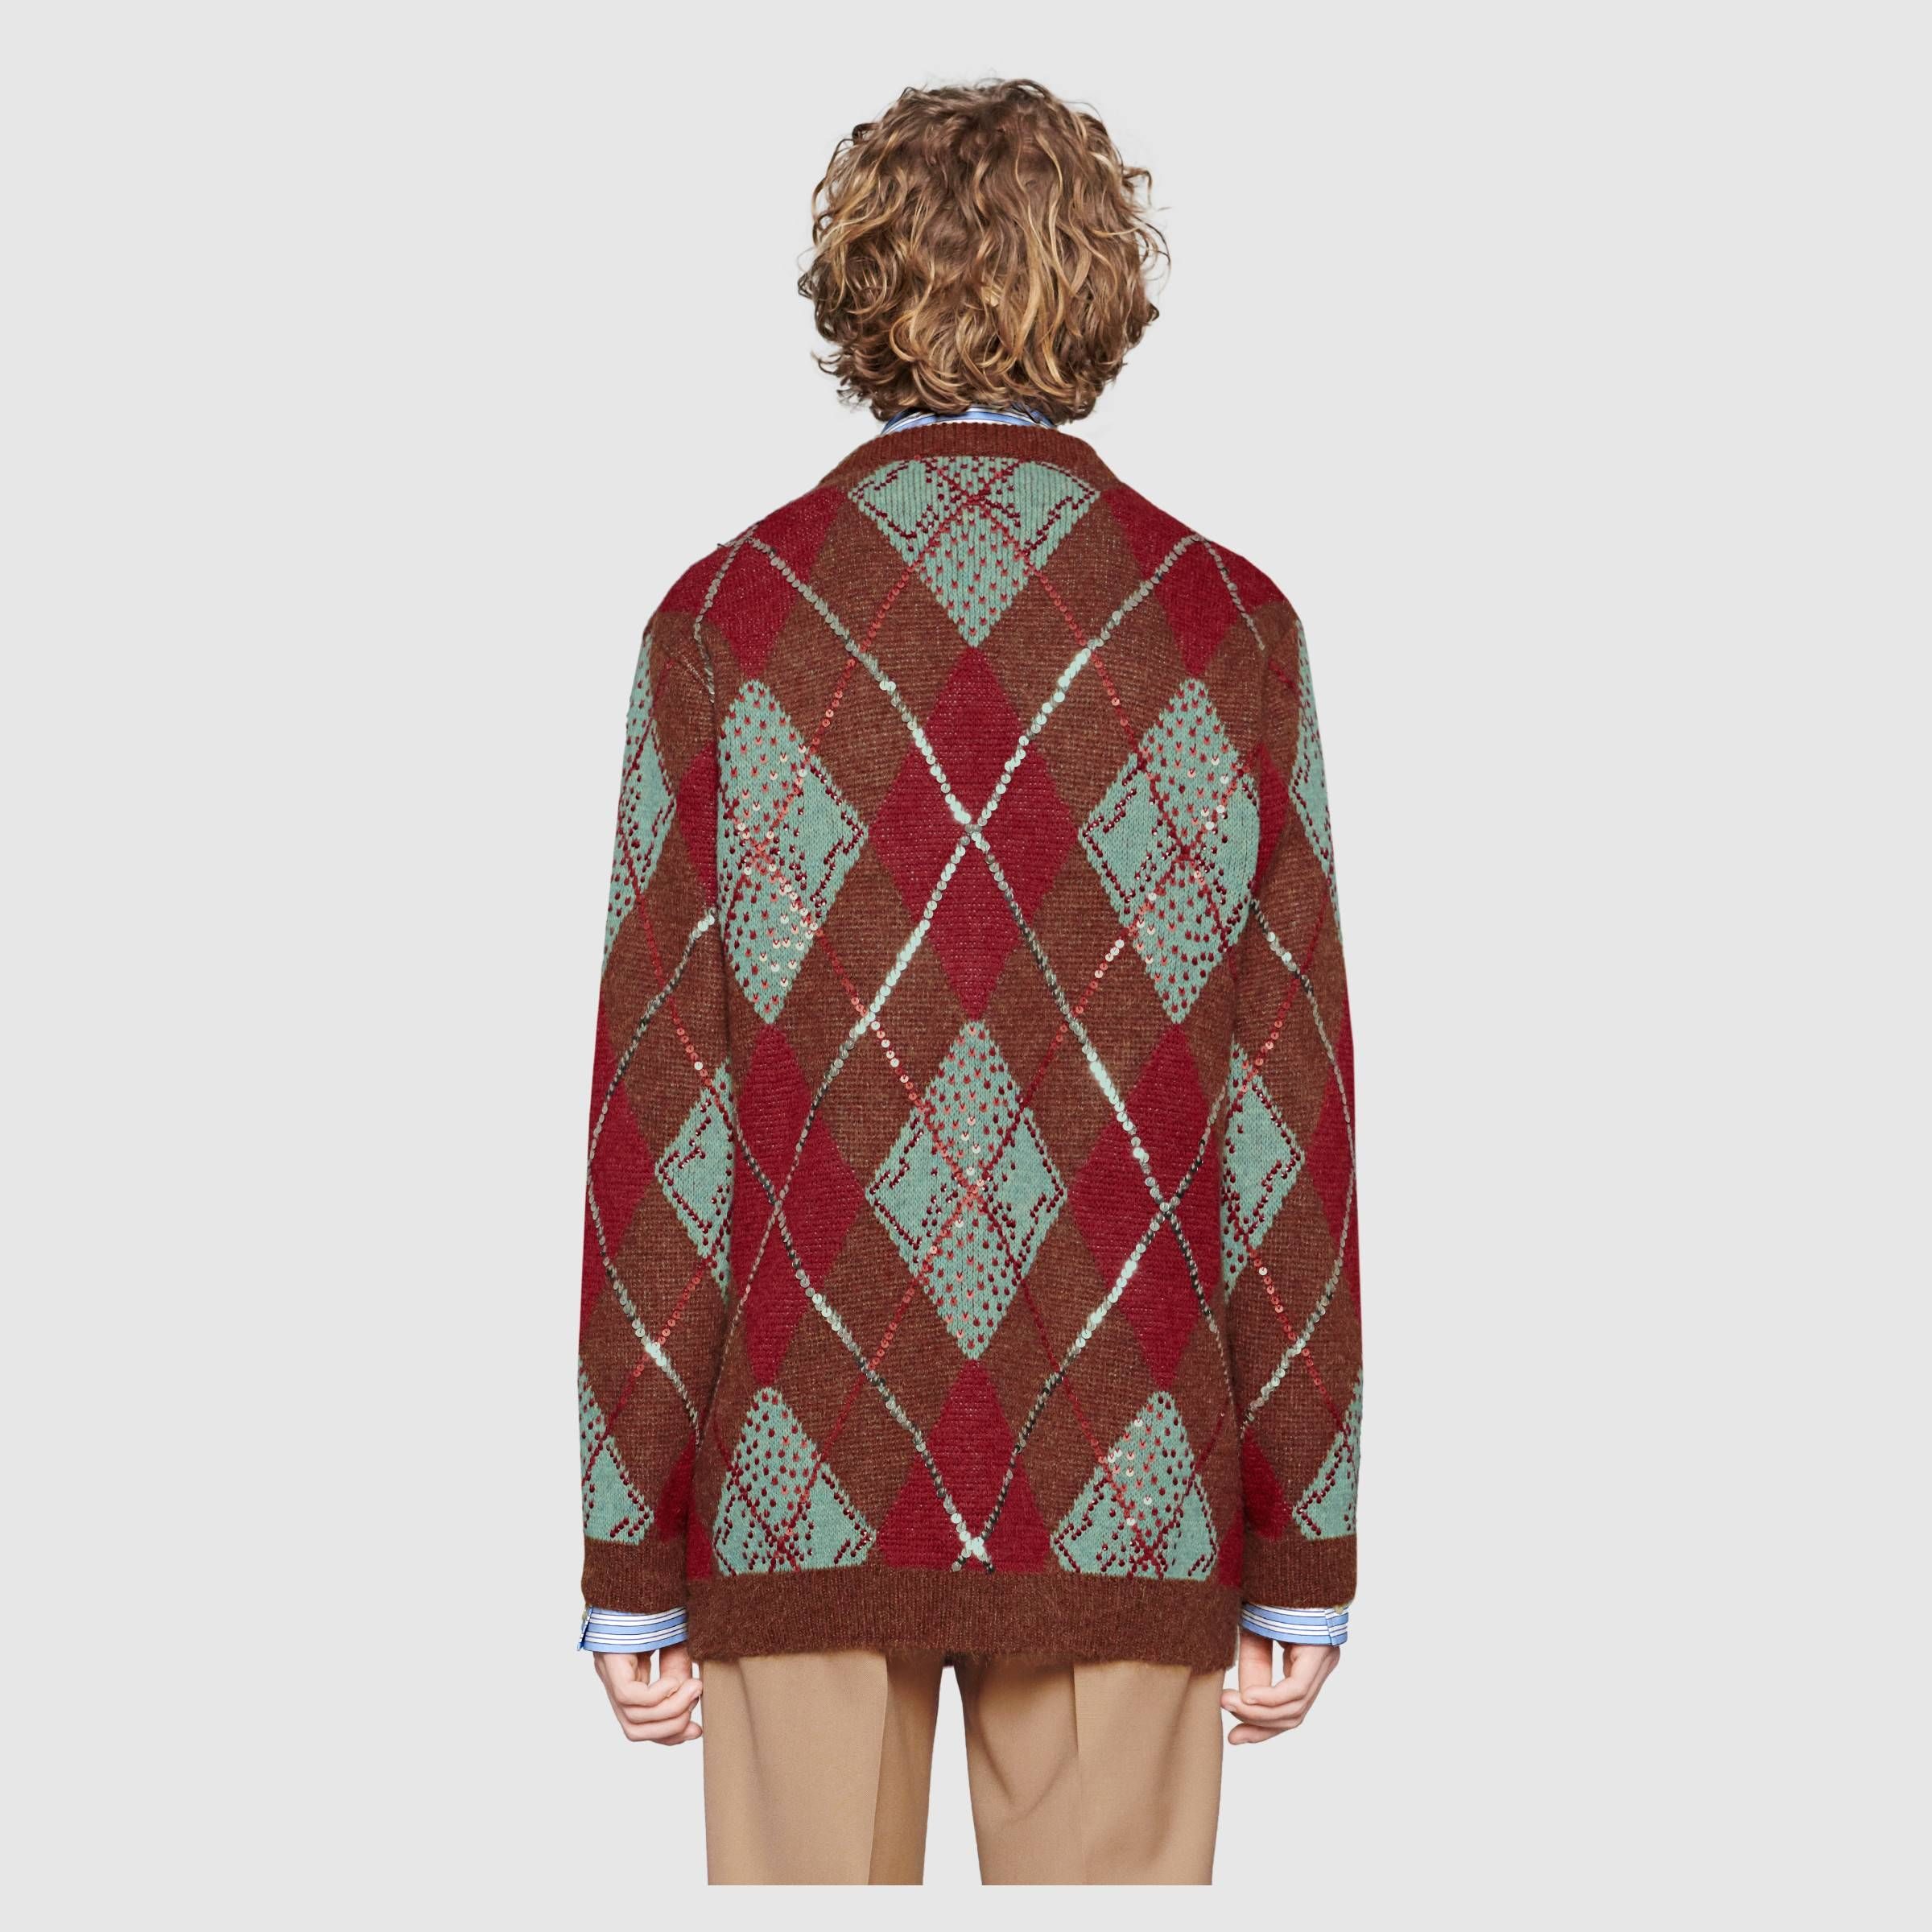 """8d88aab3105 GUCCI"""" 2018 FW runway, Oversize argyle cardigan #Brown, blue and red alpaca"""